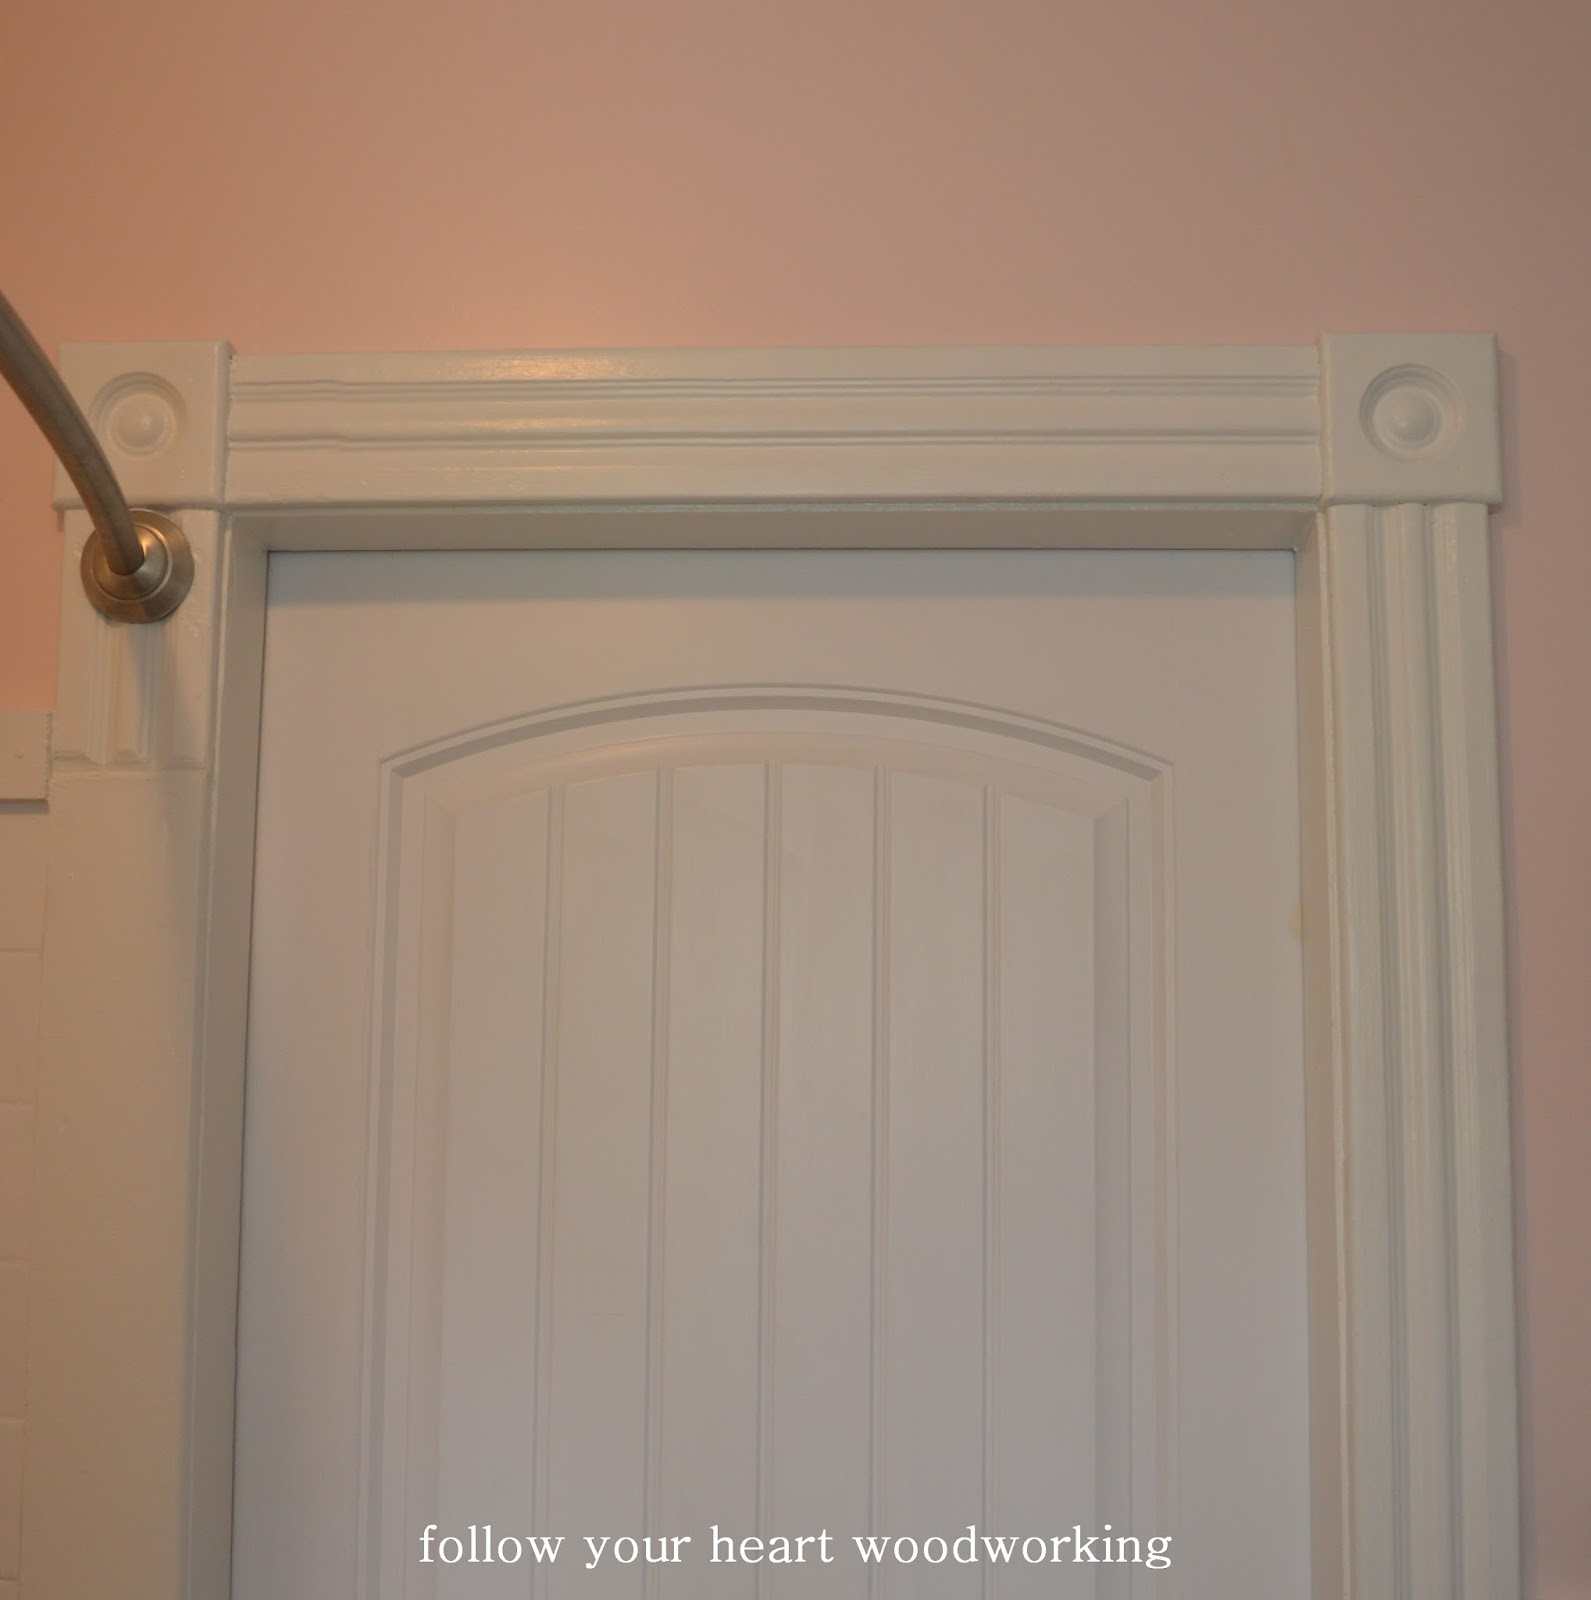 Follow Your Heart Woodworking Bathroom Renovation Part